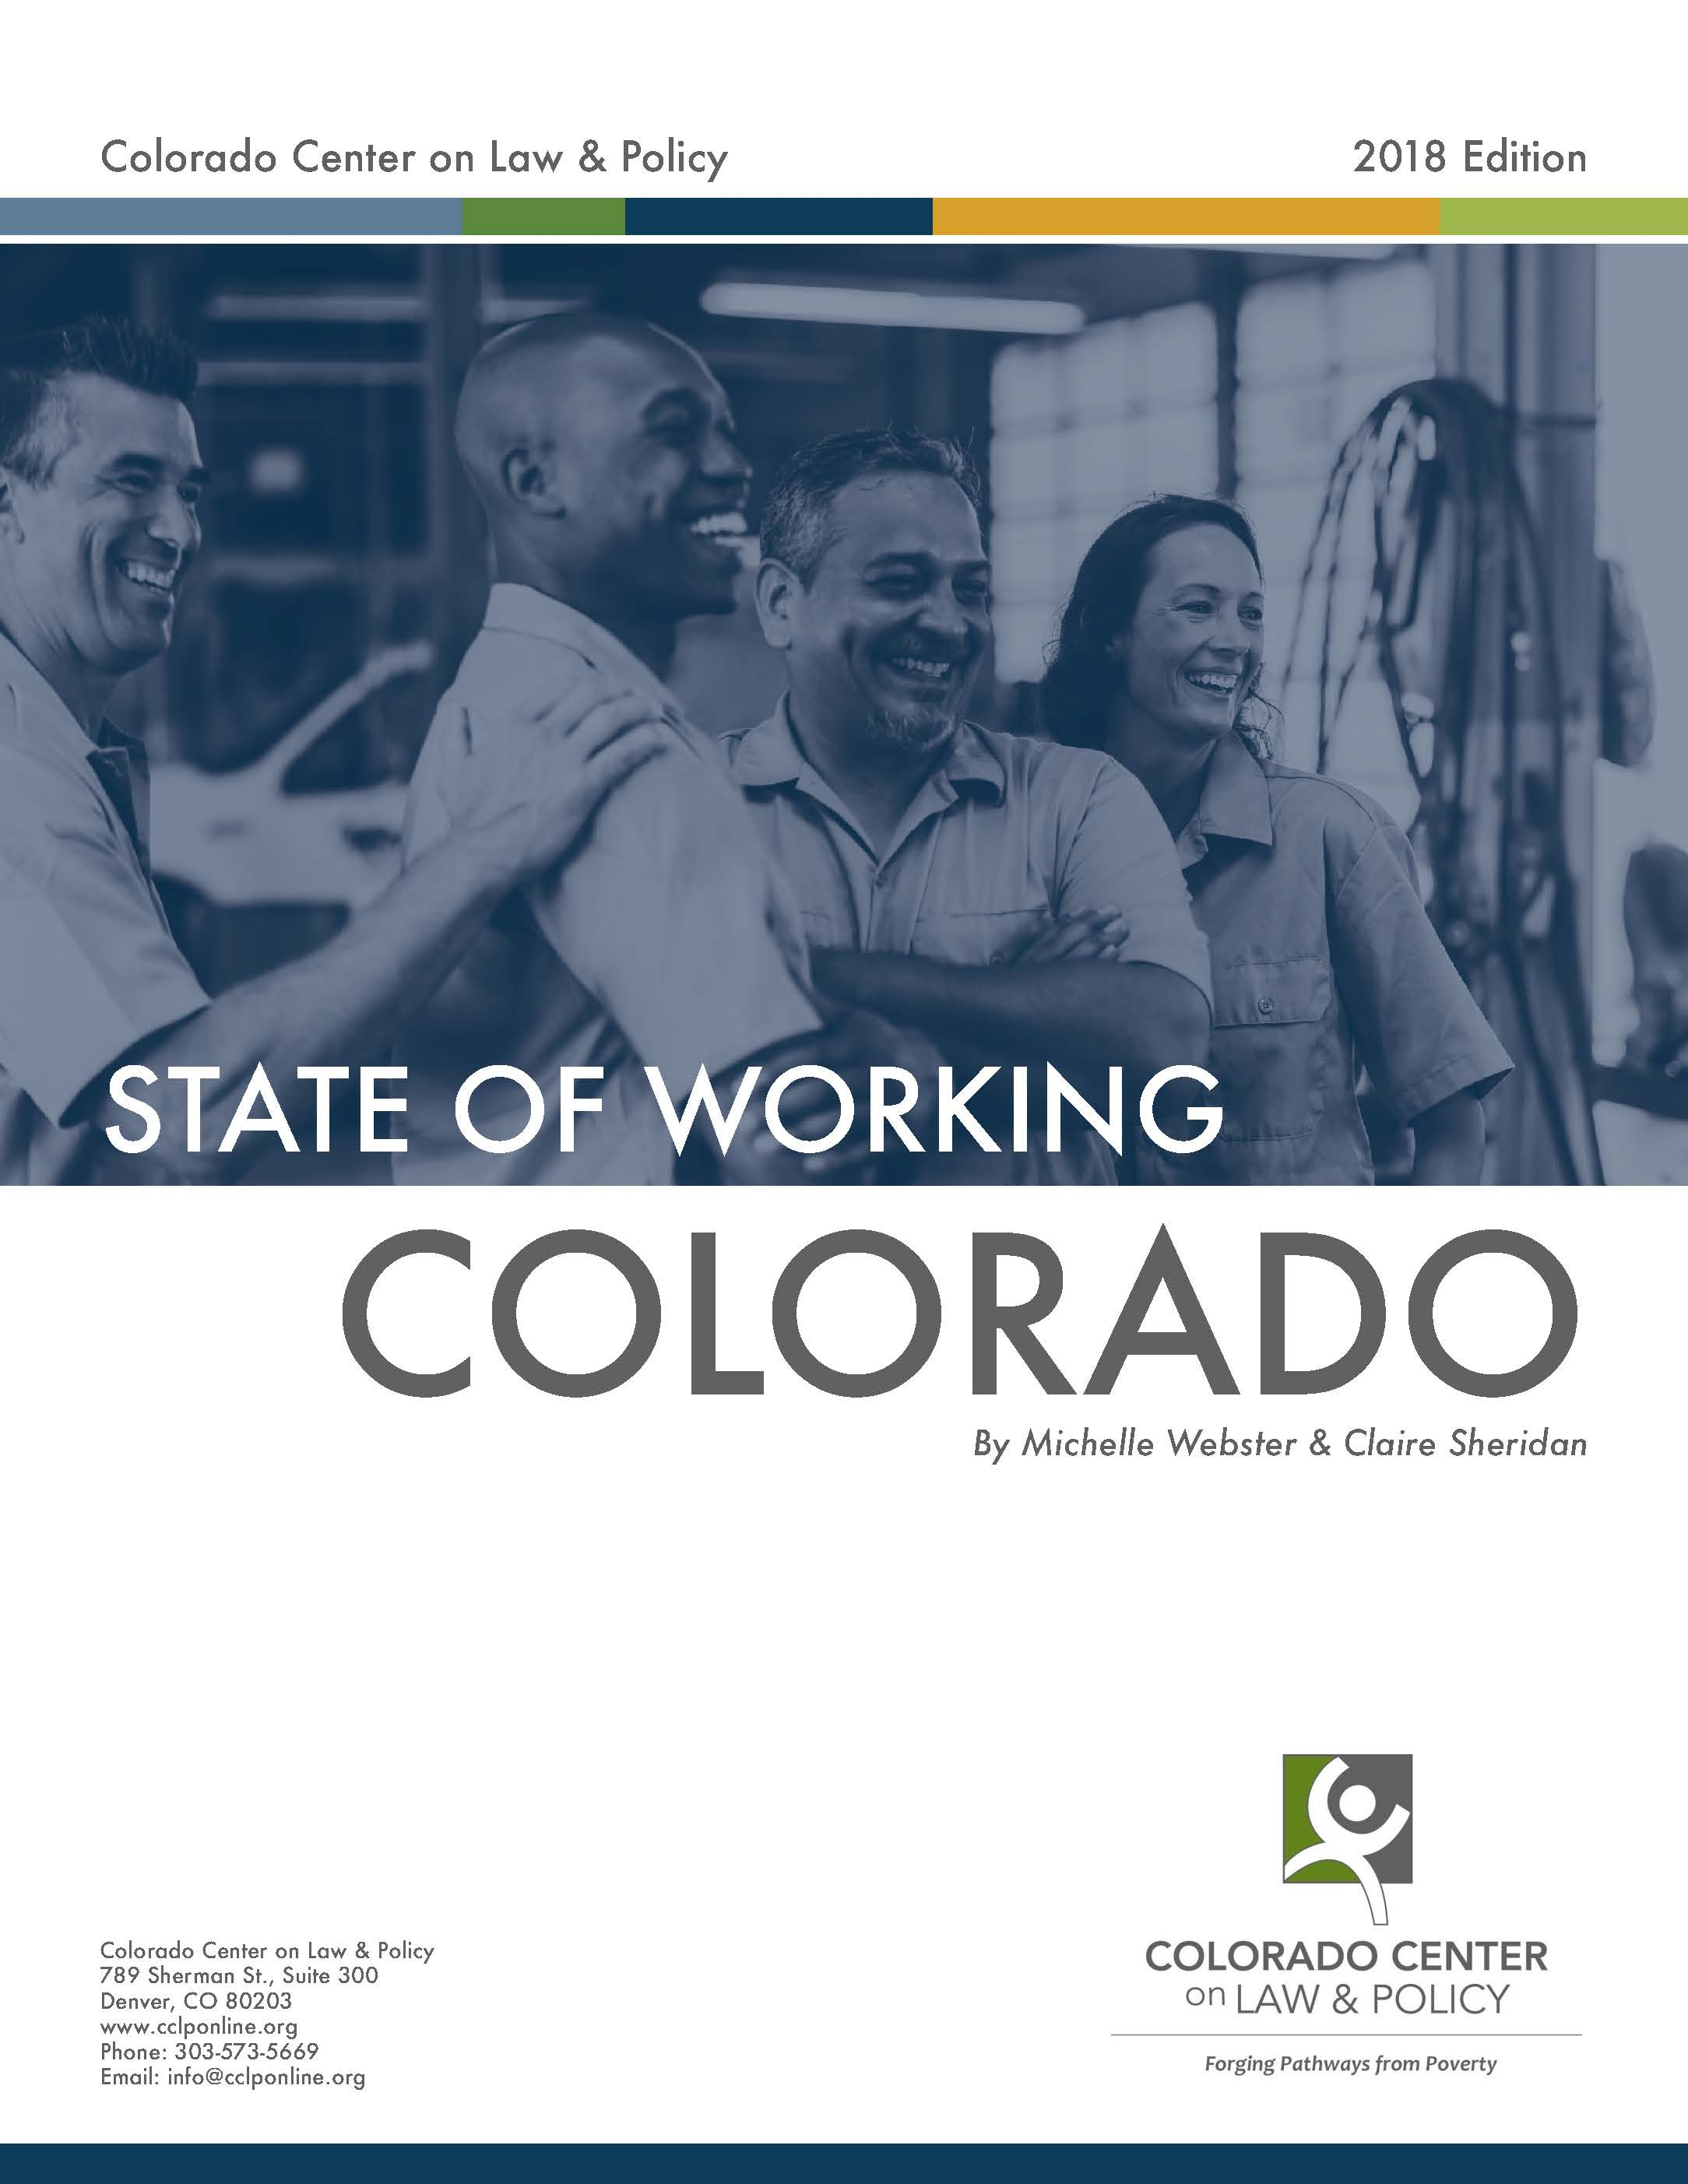 State of Working Colorado 2018